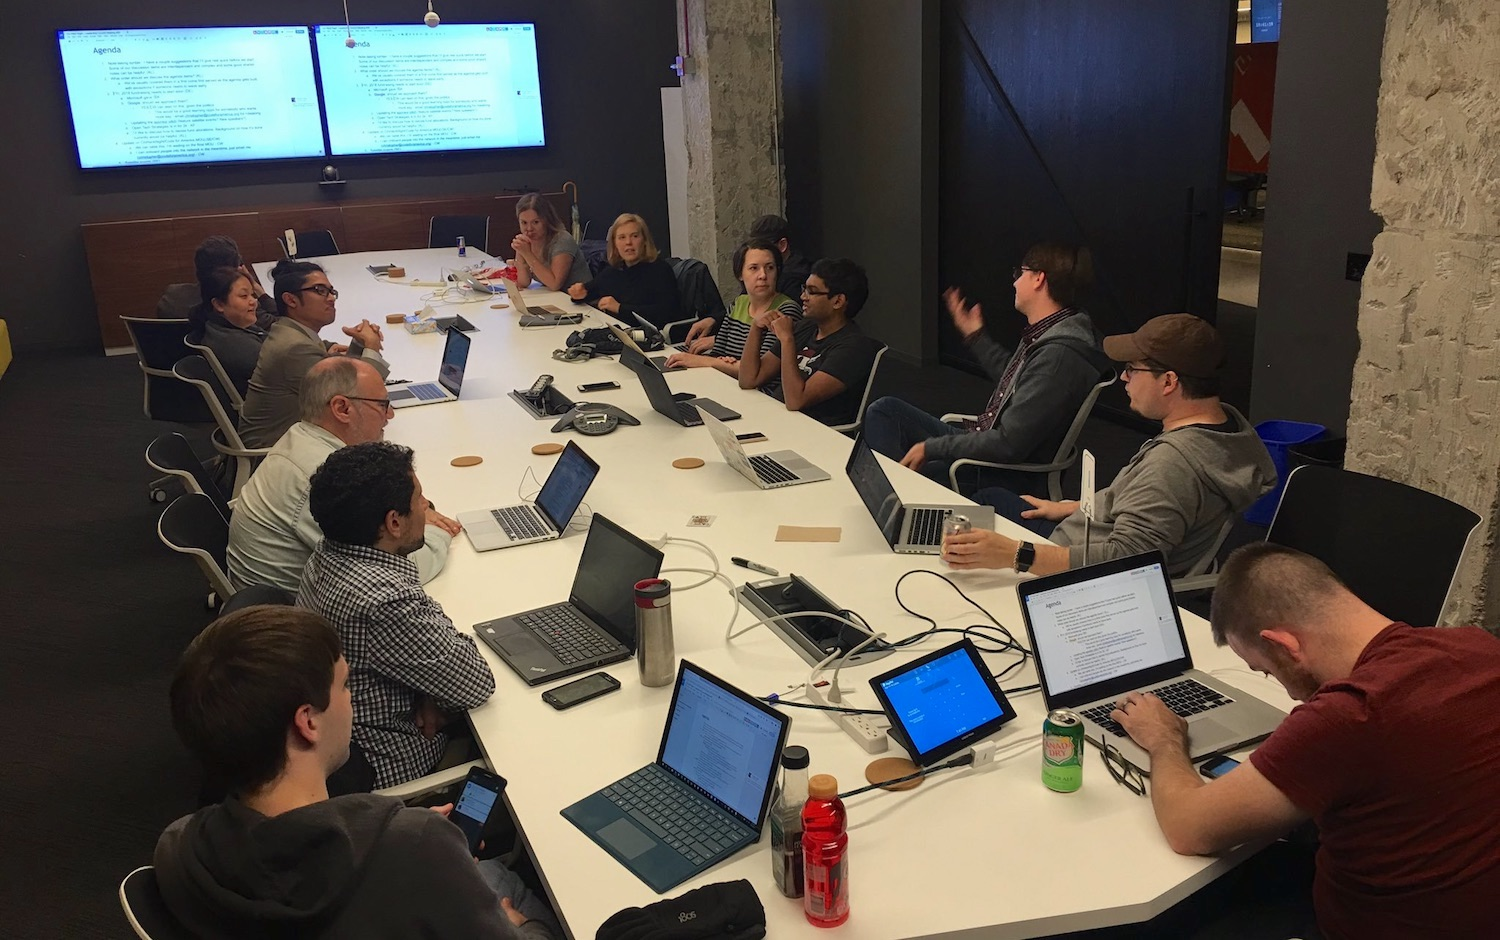 Chi Hack Night Leadership Council, Oct 24, 2017